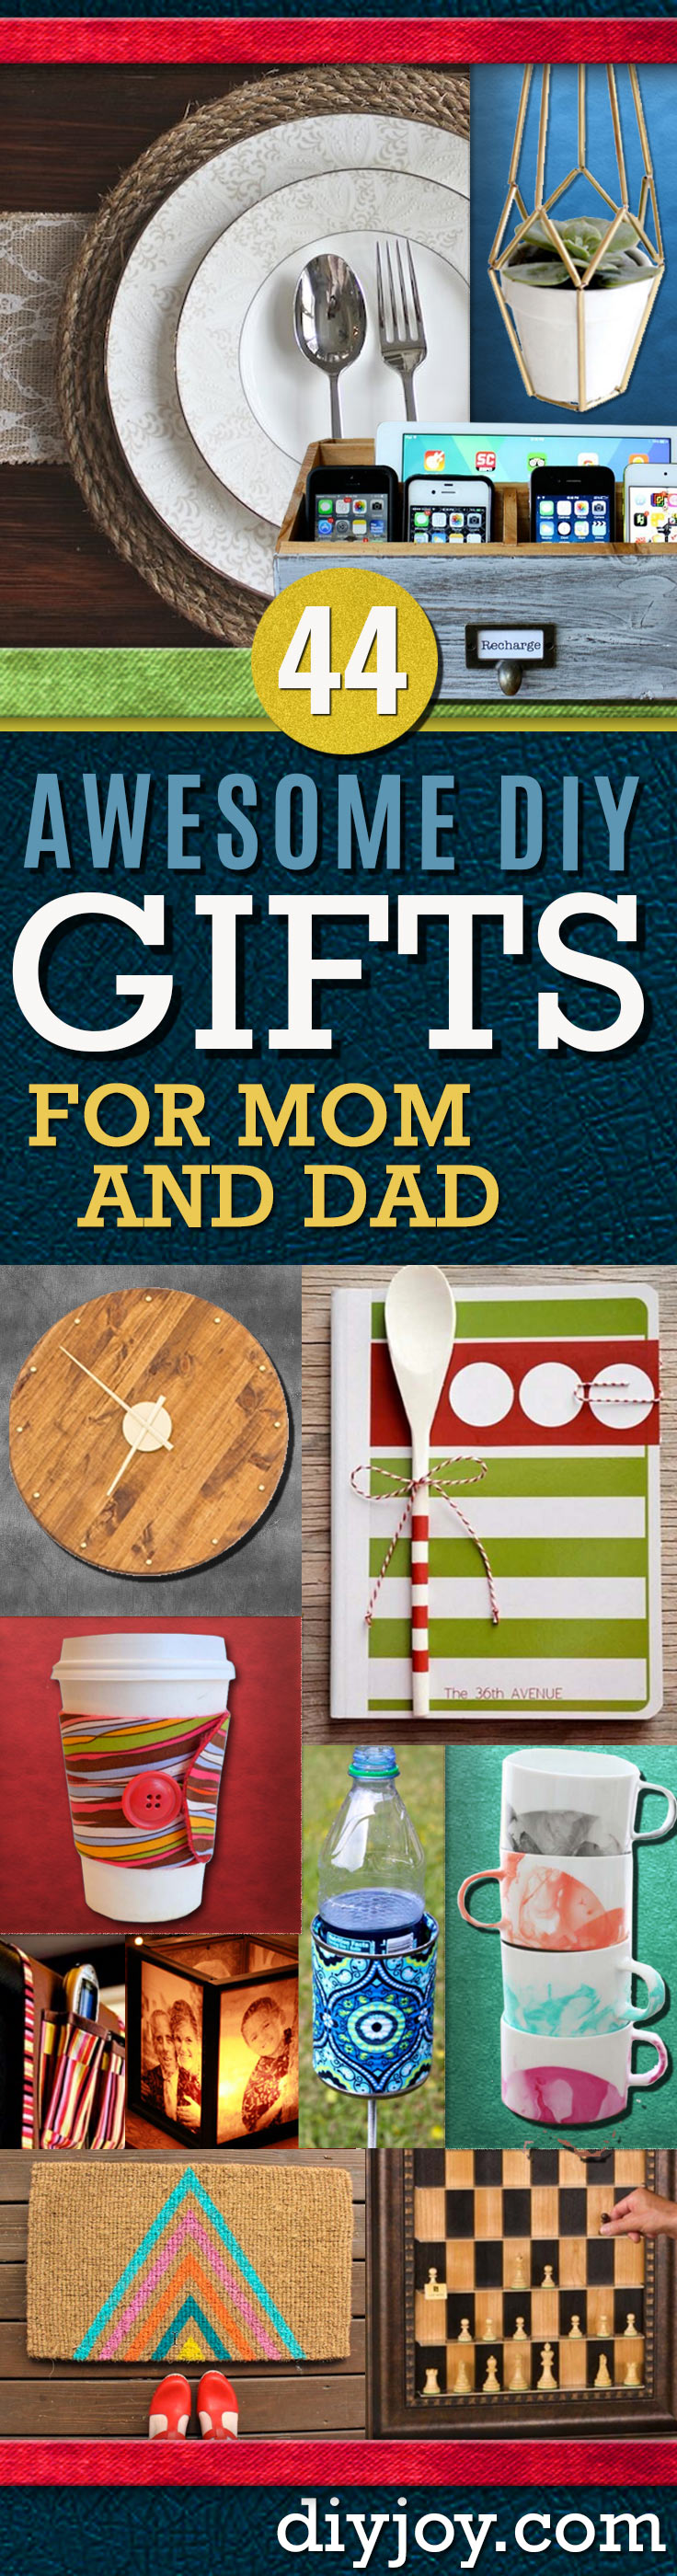 diy gifts for mom and dad homemade christmas gift ideas for your parents cool - Homemade Christmas Gifts For Dad